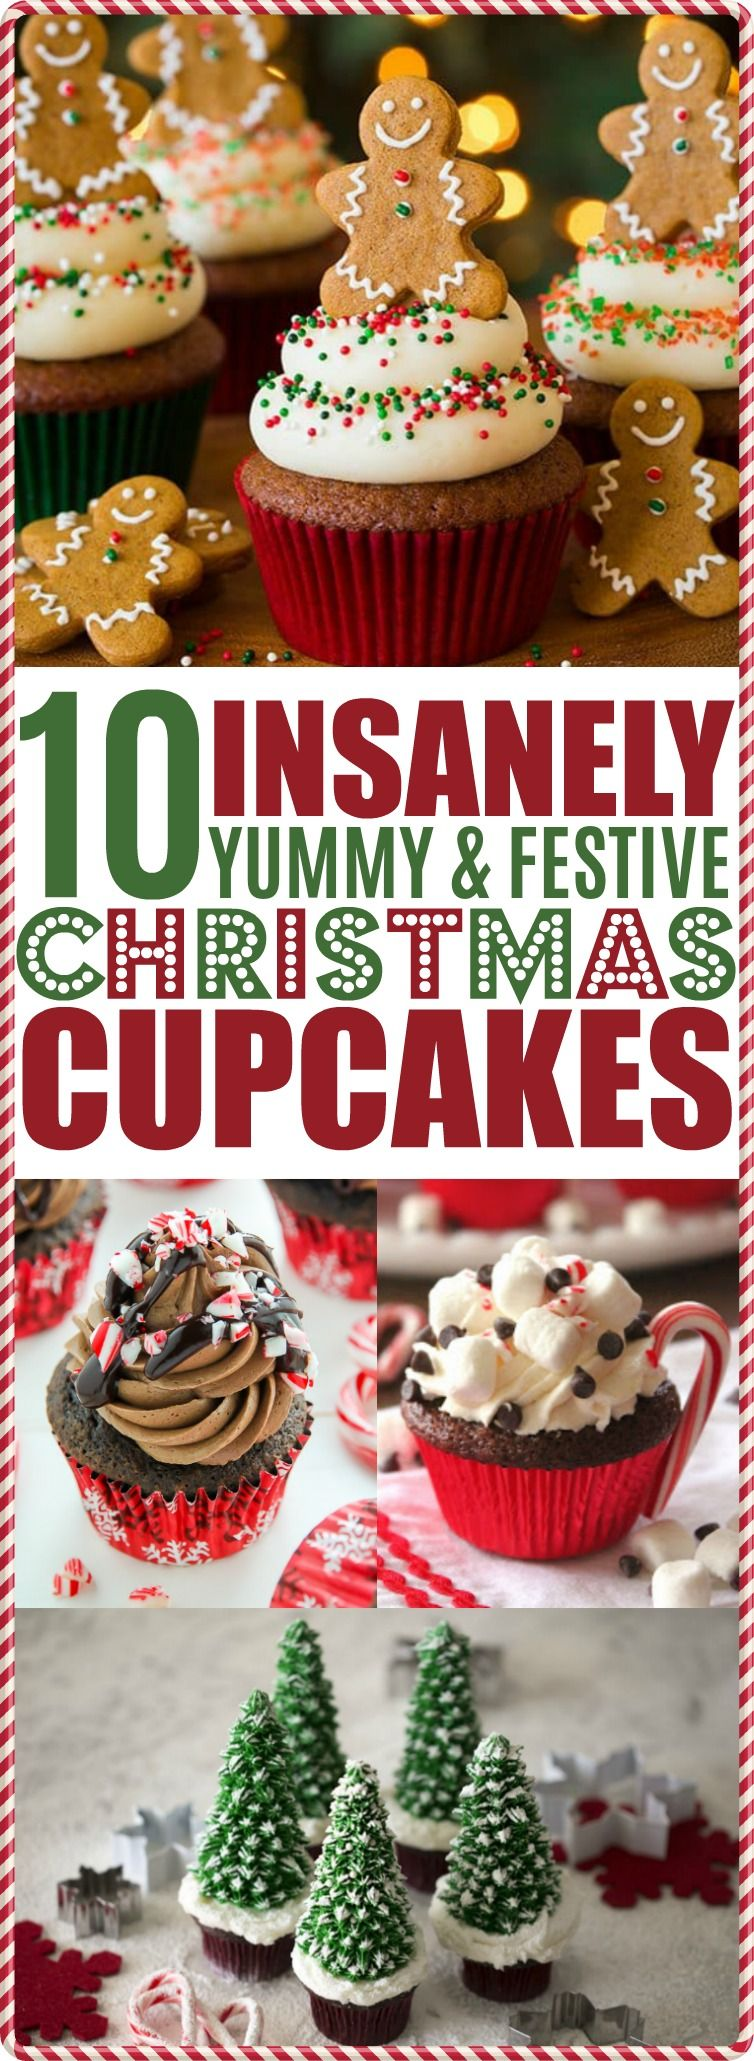 christmas cupcakeschristmas cupcake ideas christmas cupcakes decoration holiday desserts - Christmas Cupcake Decorations